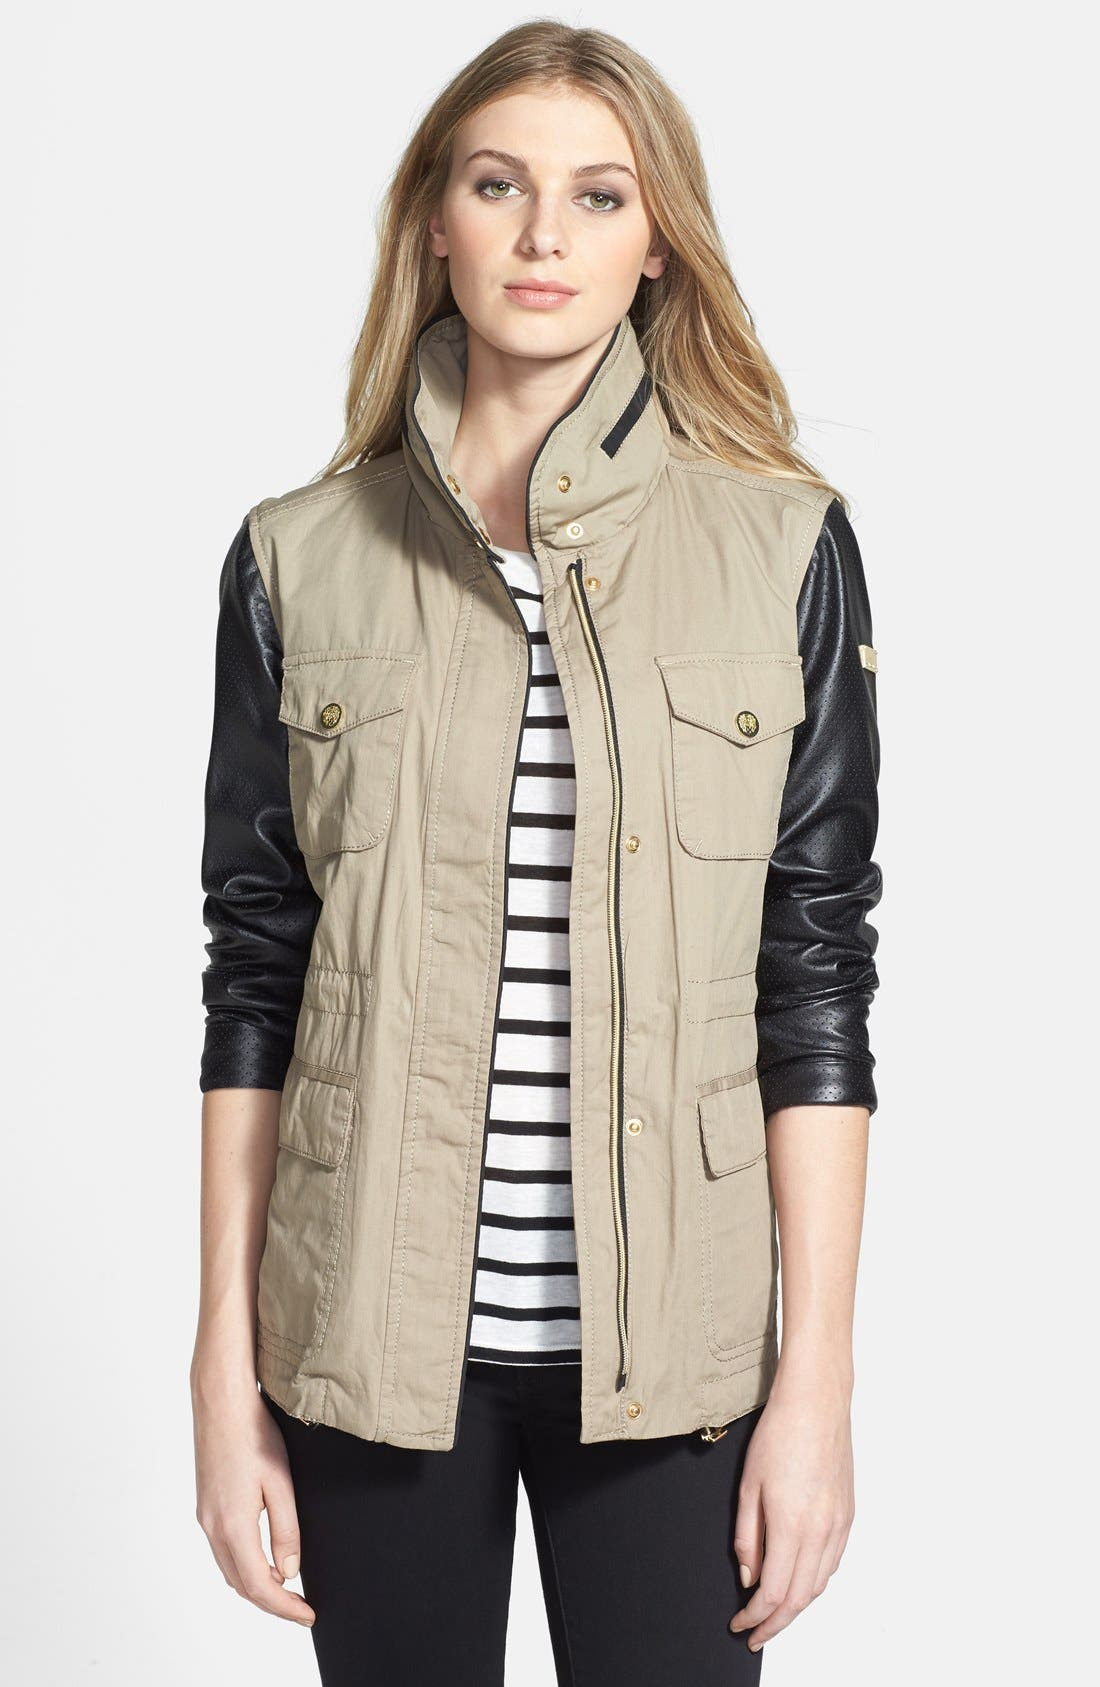 Alternate Image 1 Selected - Vince Camuto Faux Leather & Cotton Anorak